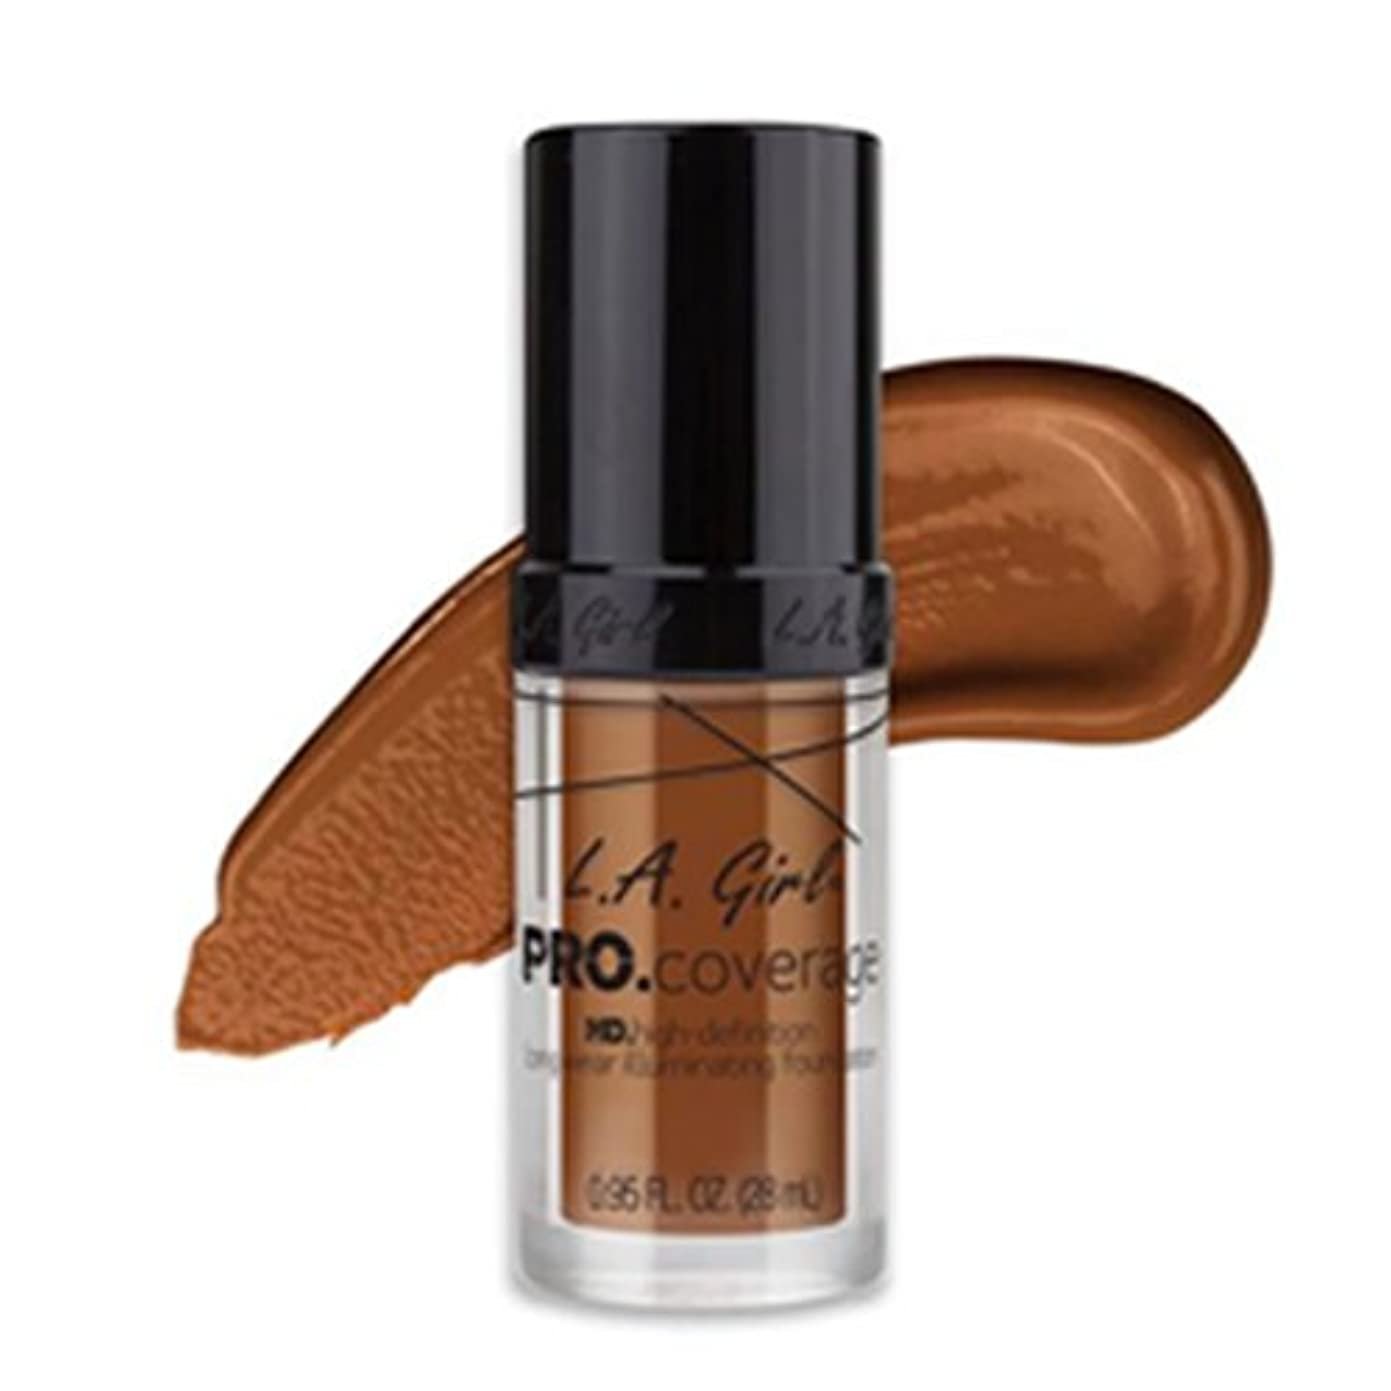 (3 Pack) L.A. Girl Pro Coverage Illuminating Foundation - Coffee (並行輸入品)